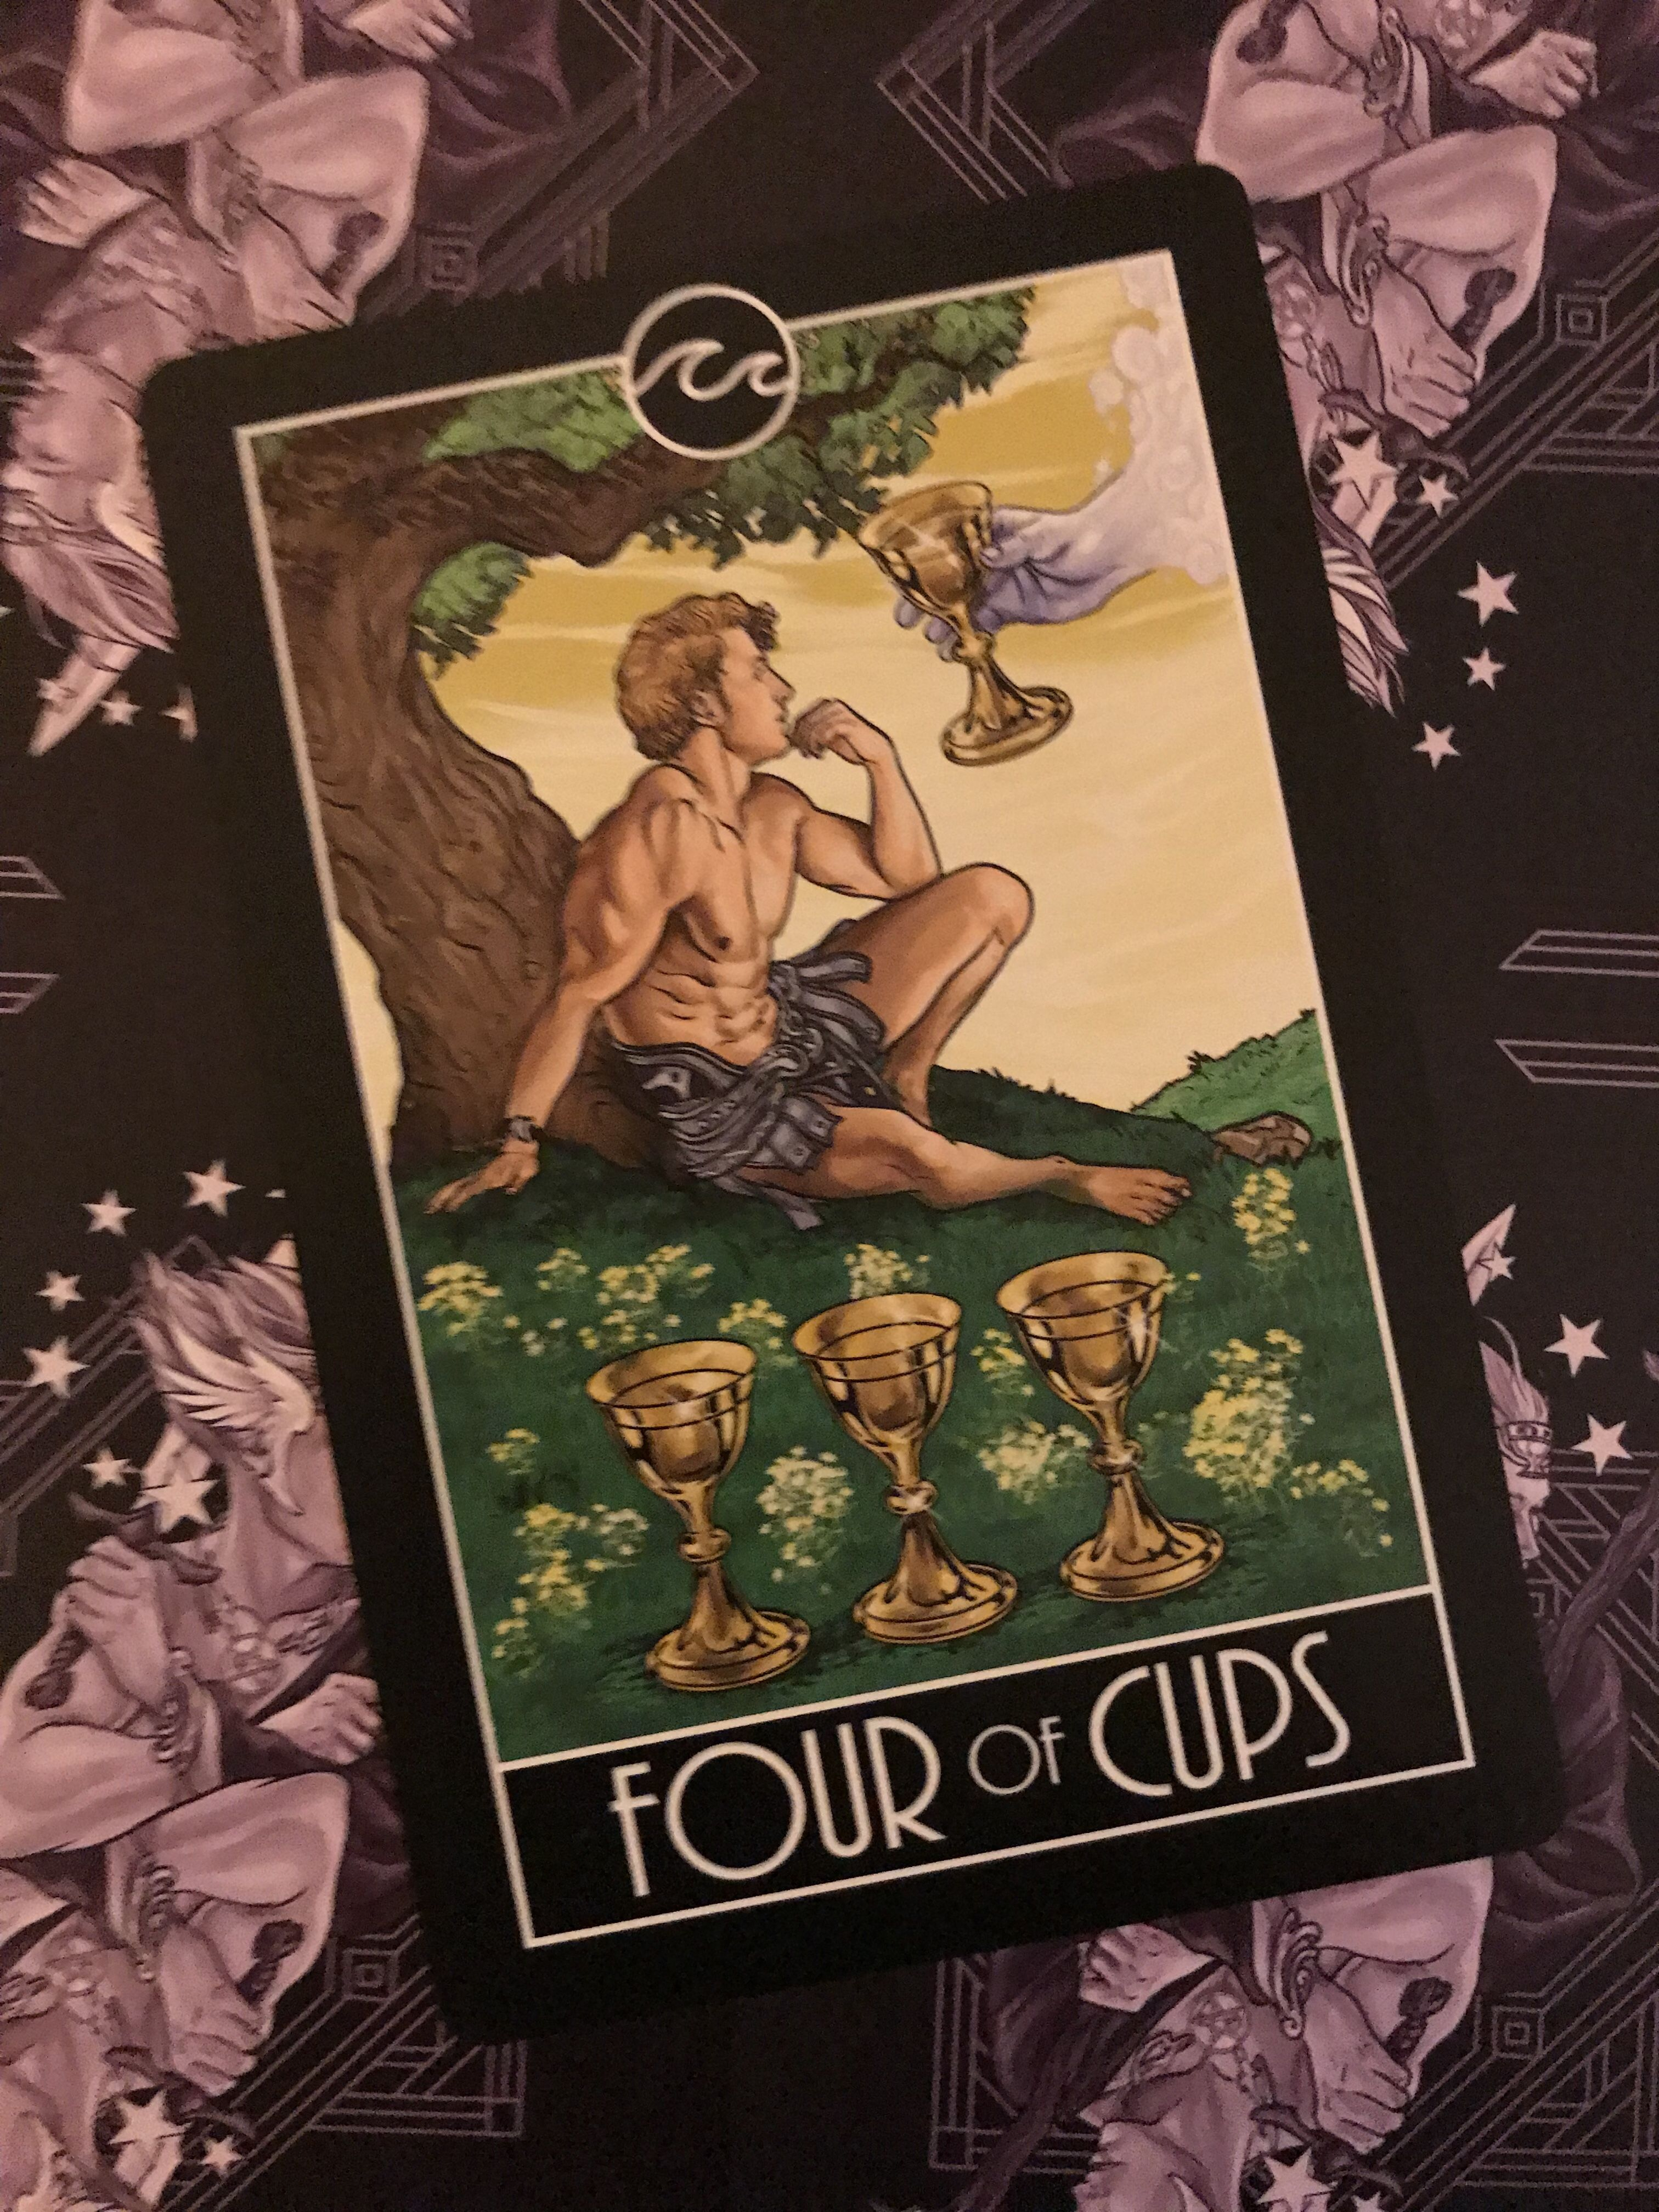 Featured card of the day 4 of cups divine diversity